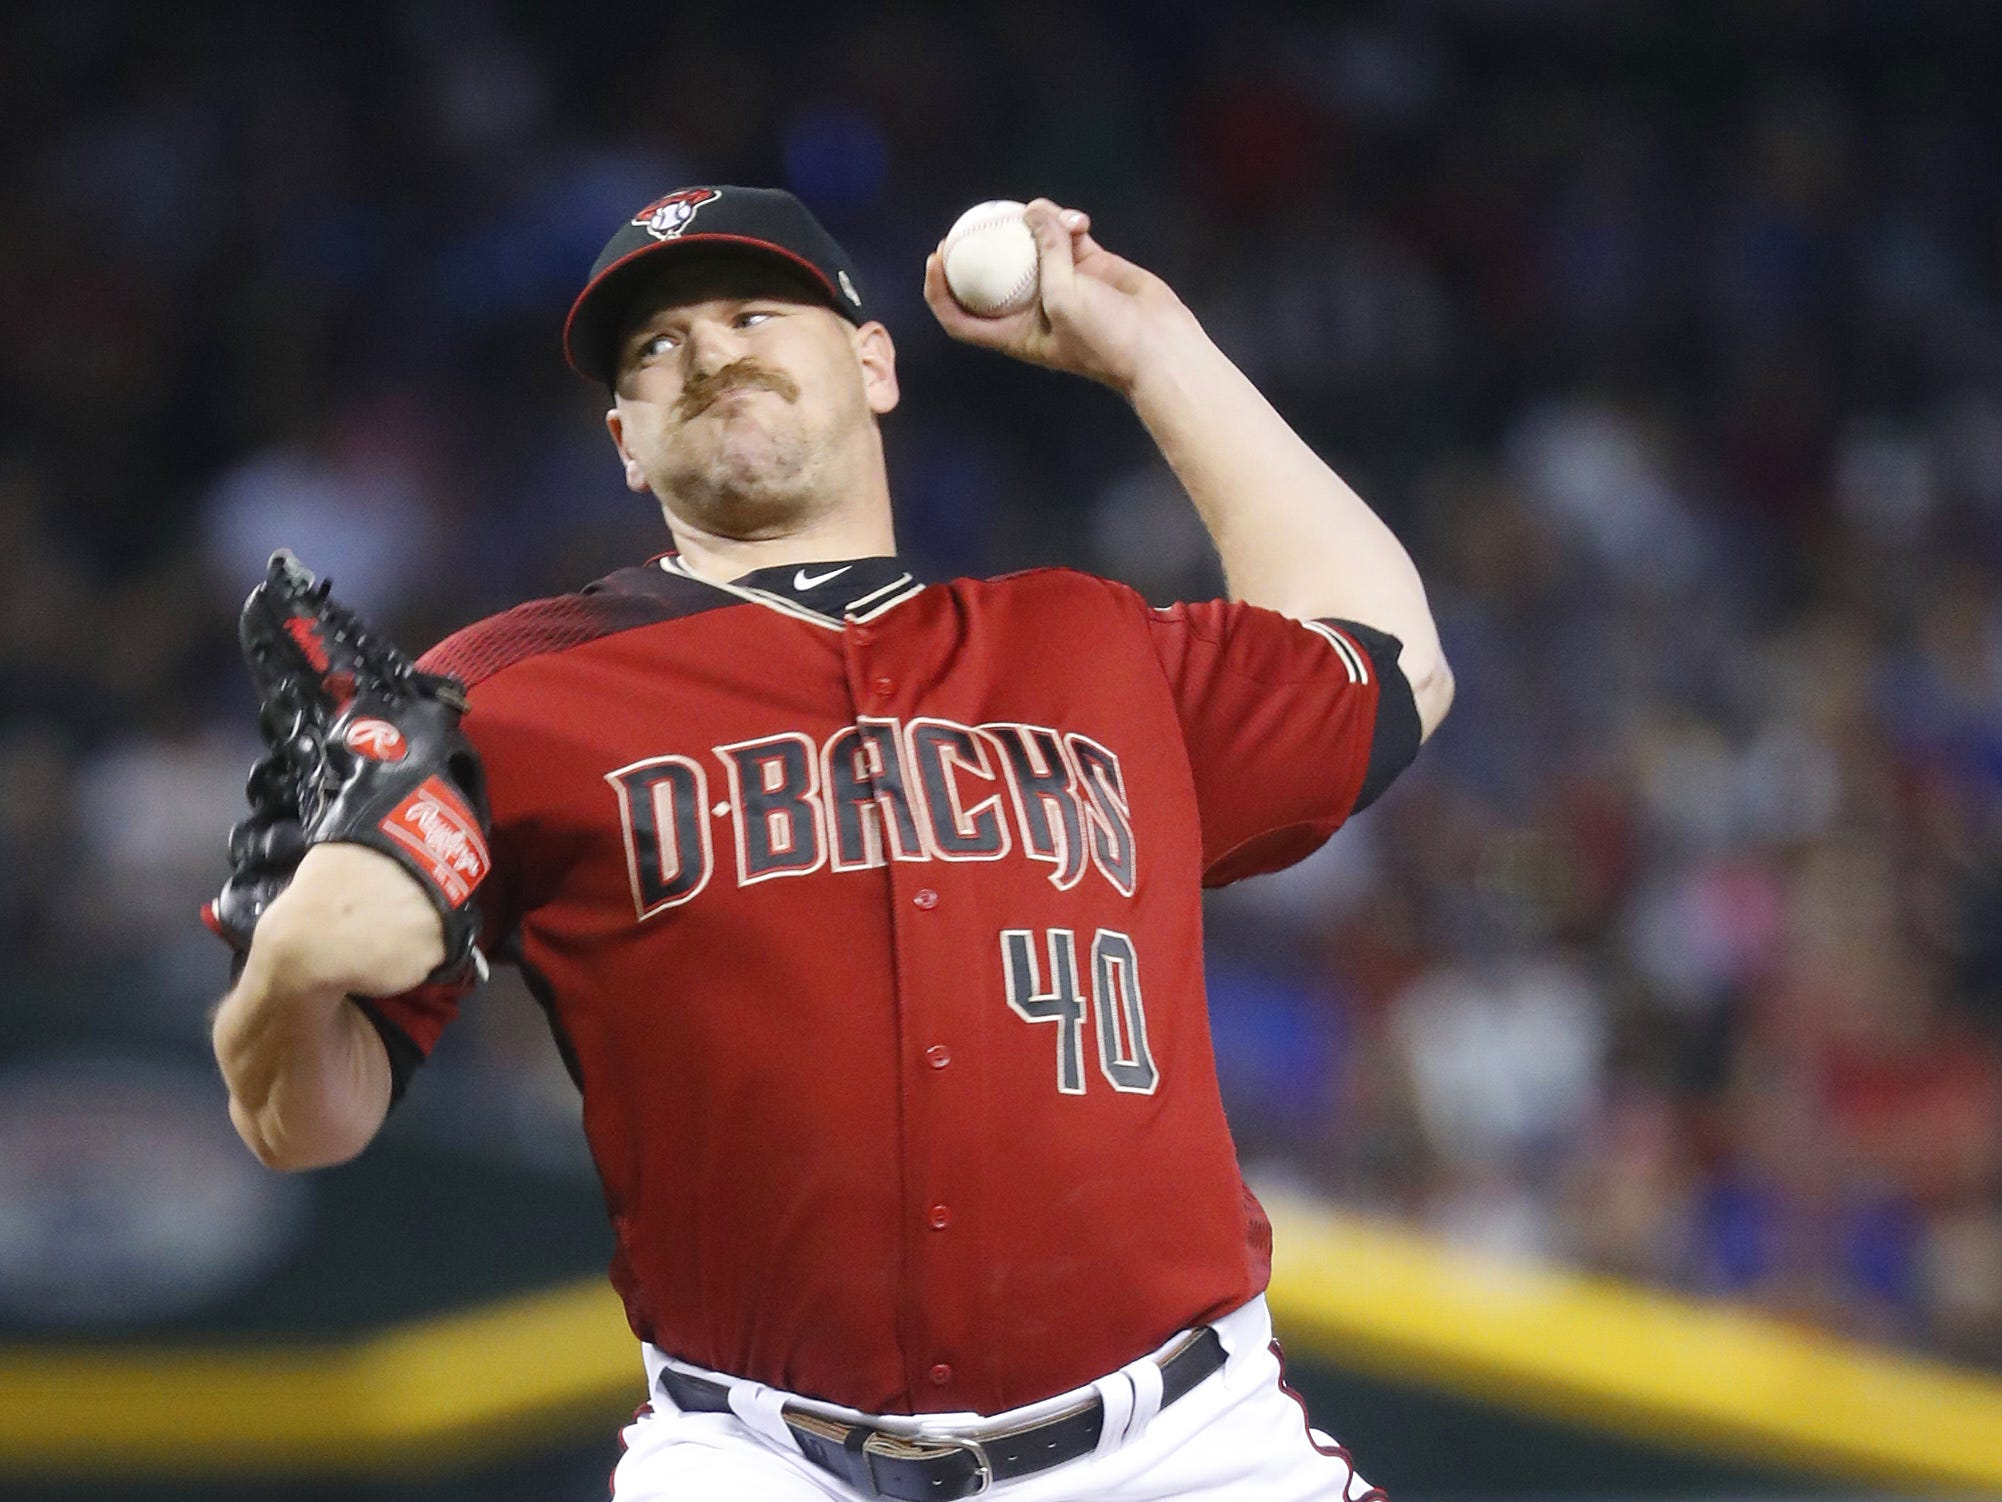 Diamondbacks' Andrew Chafin (40) pitches in relief against the Cubs during the sixth inning at Chase Field in Phoenix, Ariz. on April 28, 2019.